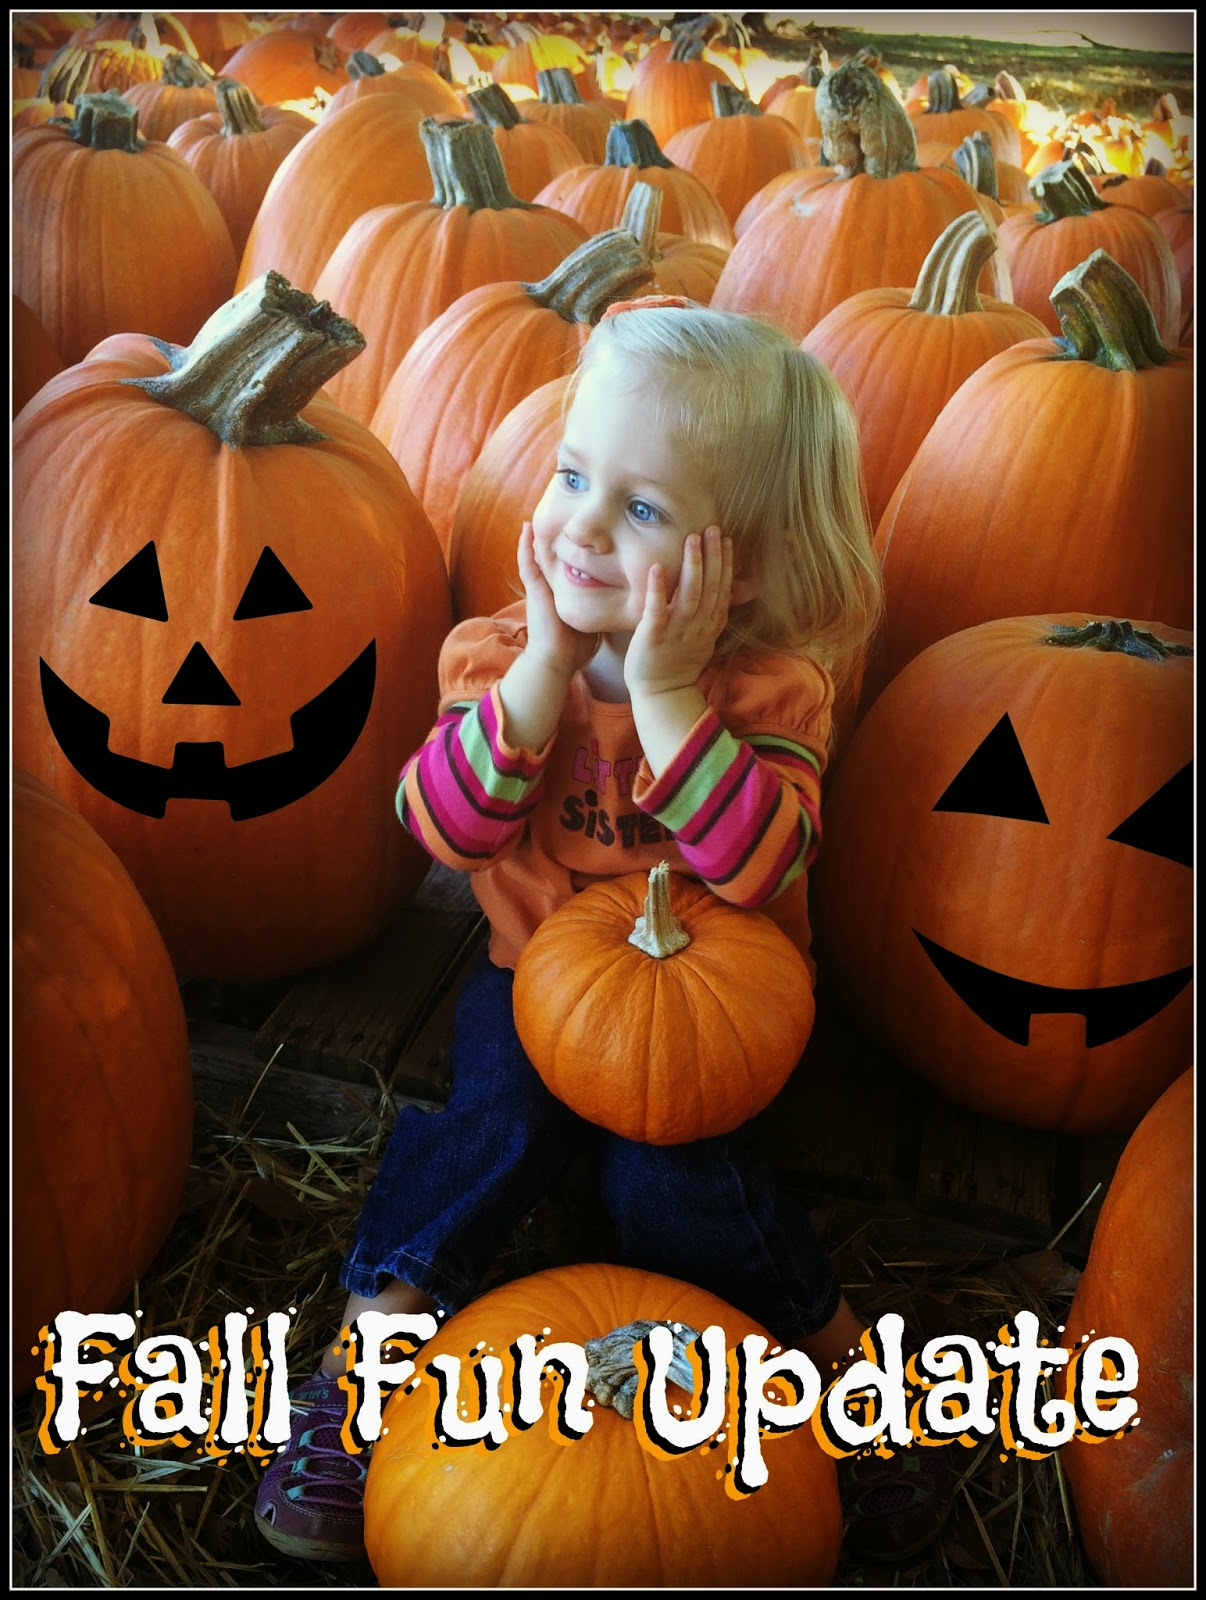 http://timeforseason.blogspot.com/2014/11/fall-fun-update.html